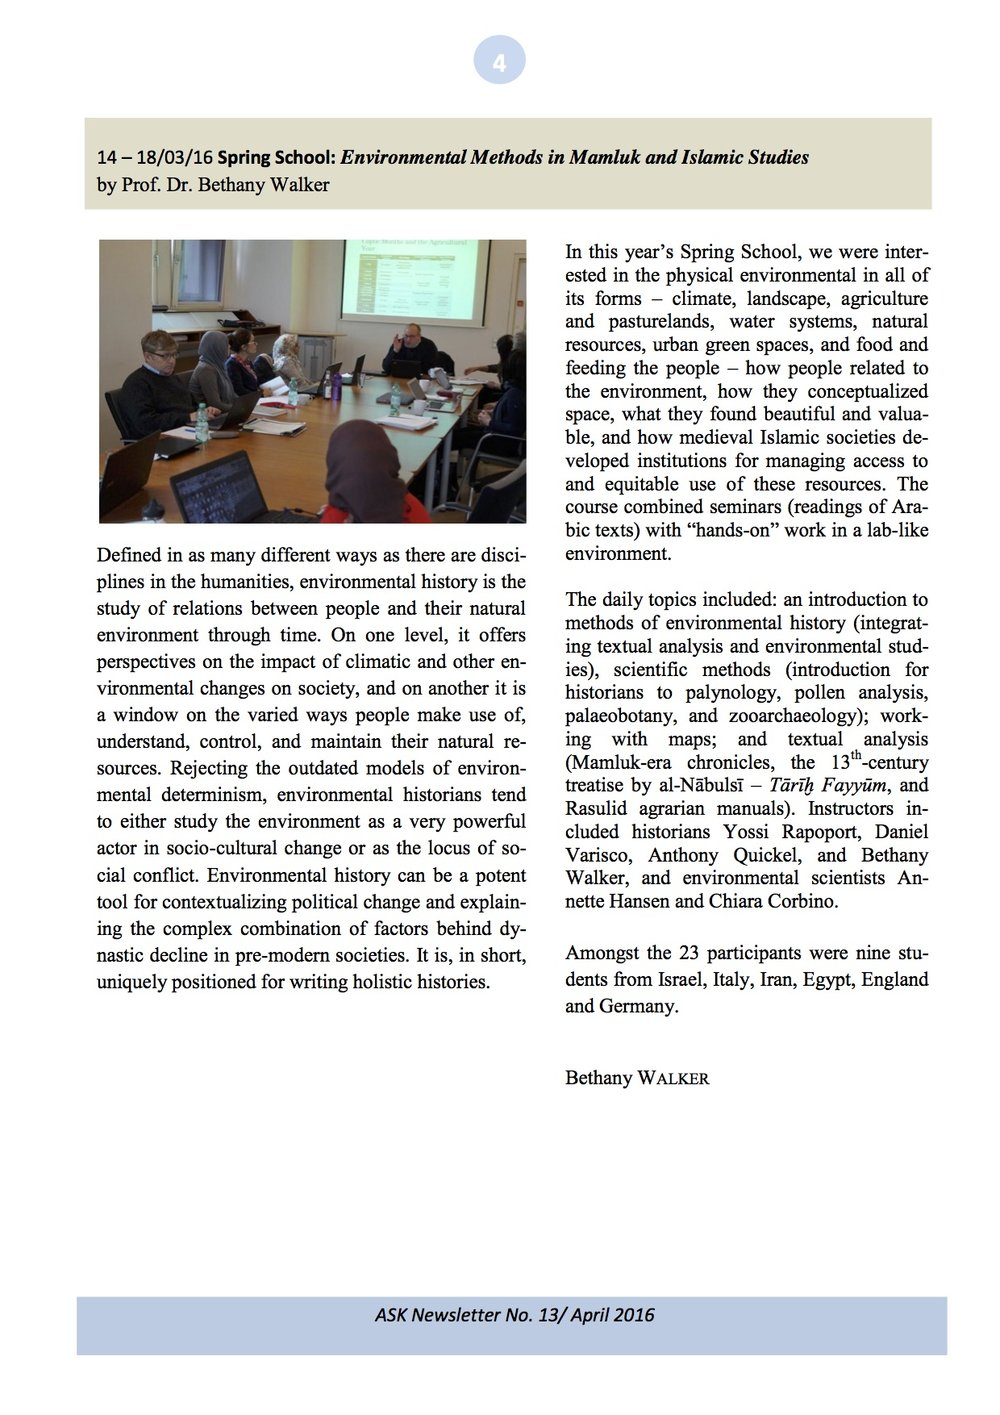 A write-up by Prof. Bethany Walker about the spring school in the Kolleg's newsletter from April 2016.